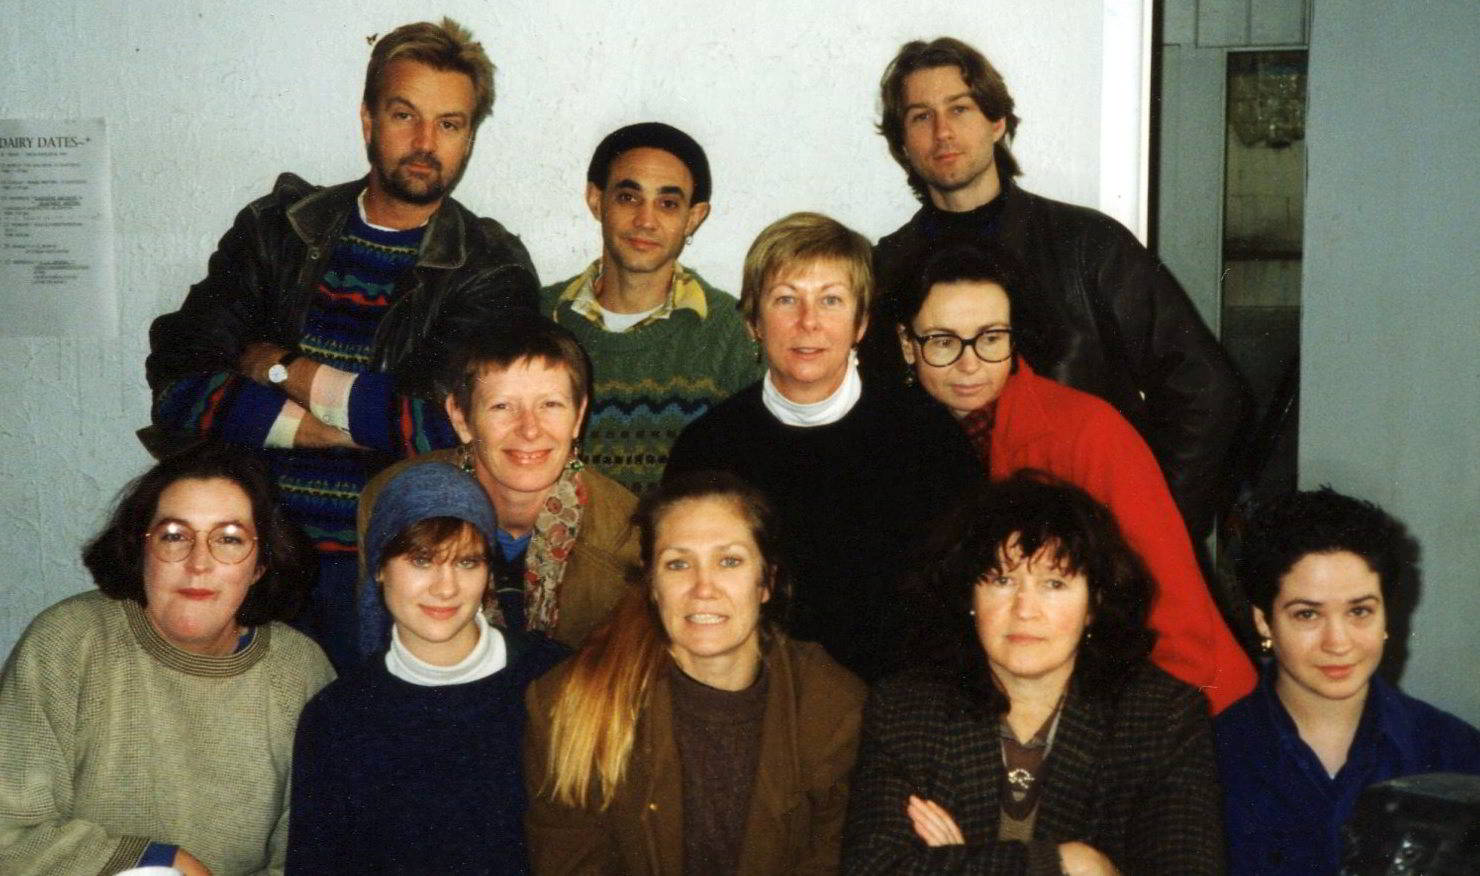 Handspan Theatre Daze of Our Lives group photo of eleven people in winter clothes